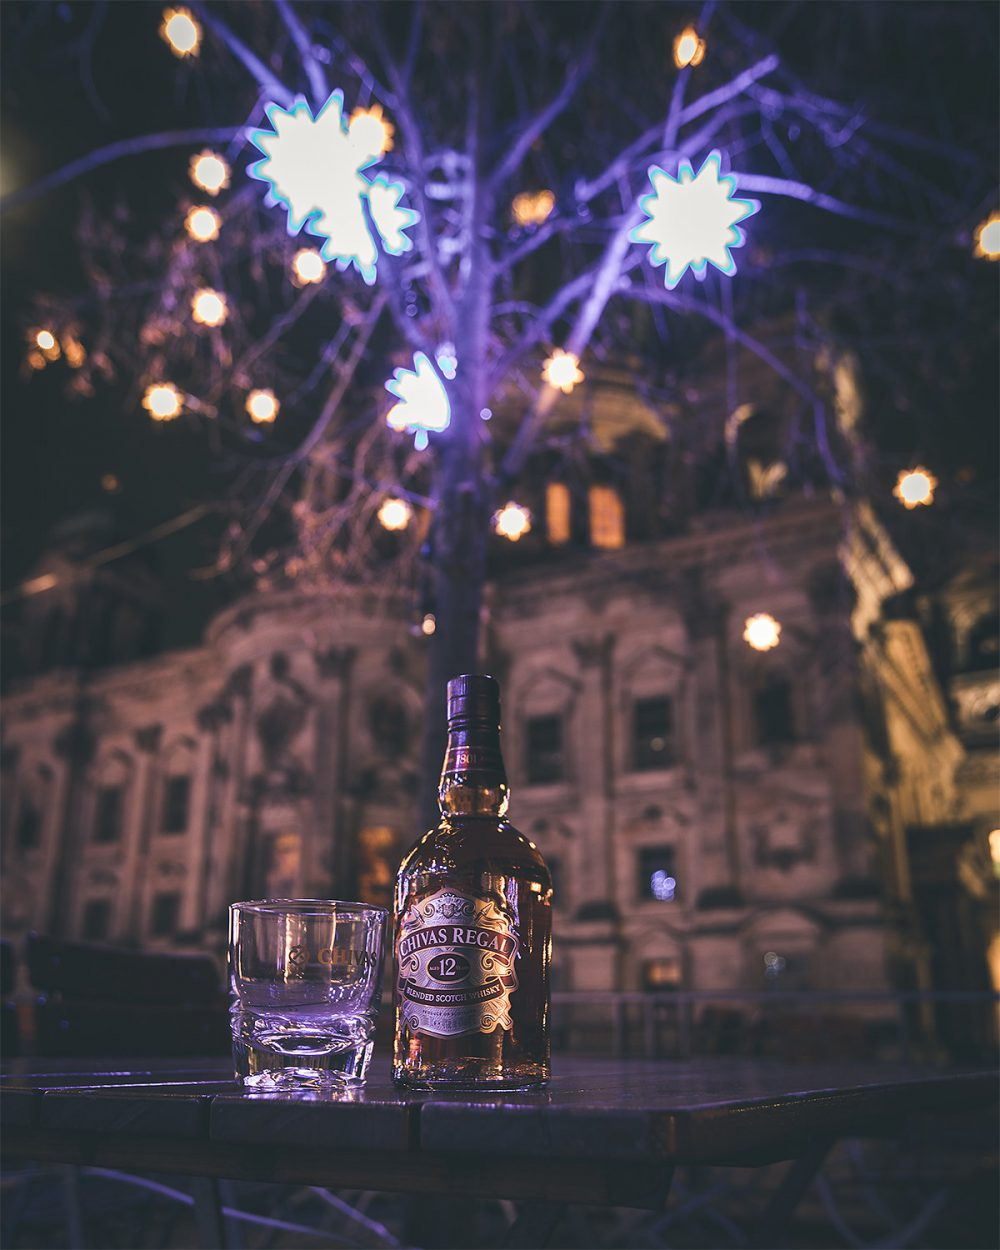 Fireworks at Christmas with Chivas Regal sat in the foreground, shot by influencer Zerletti